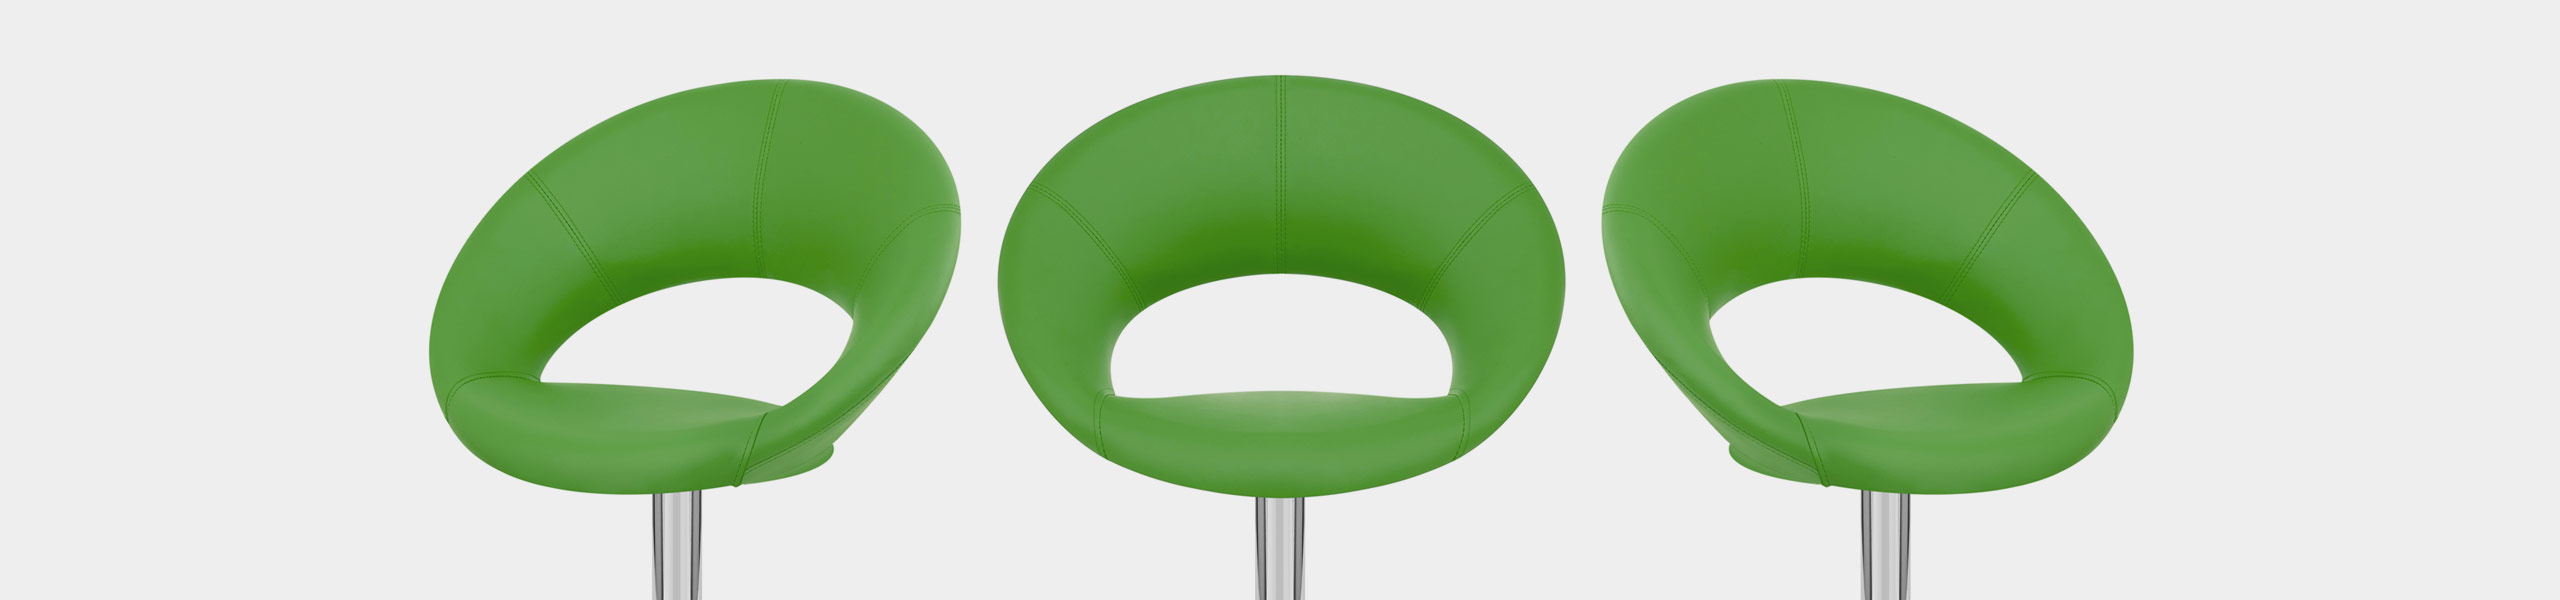 Clementine Chair Green Video Banner